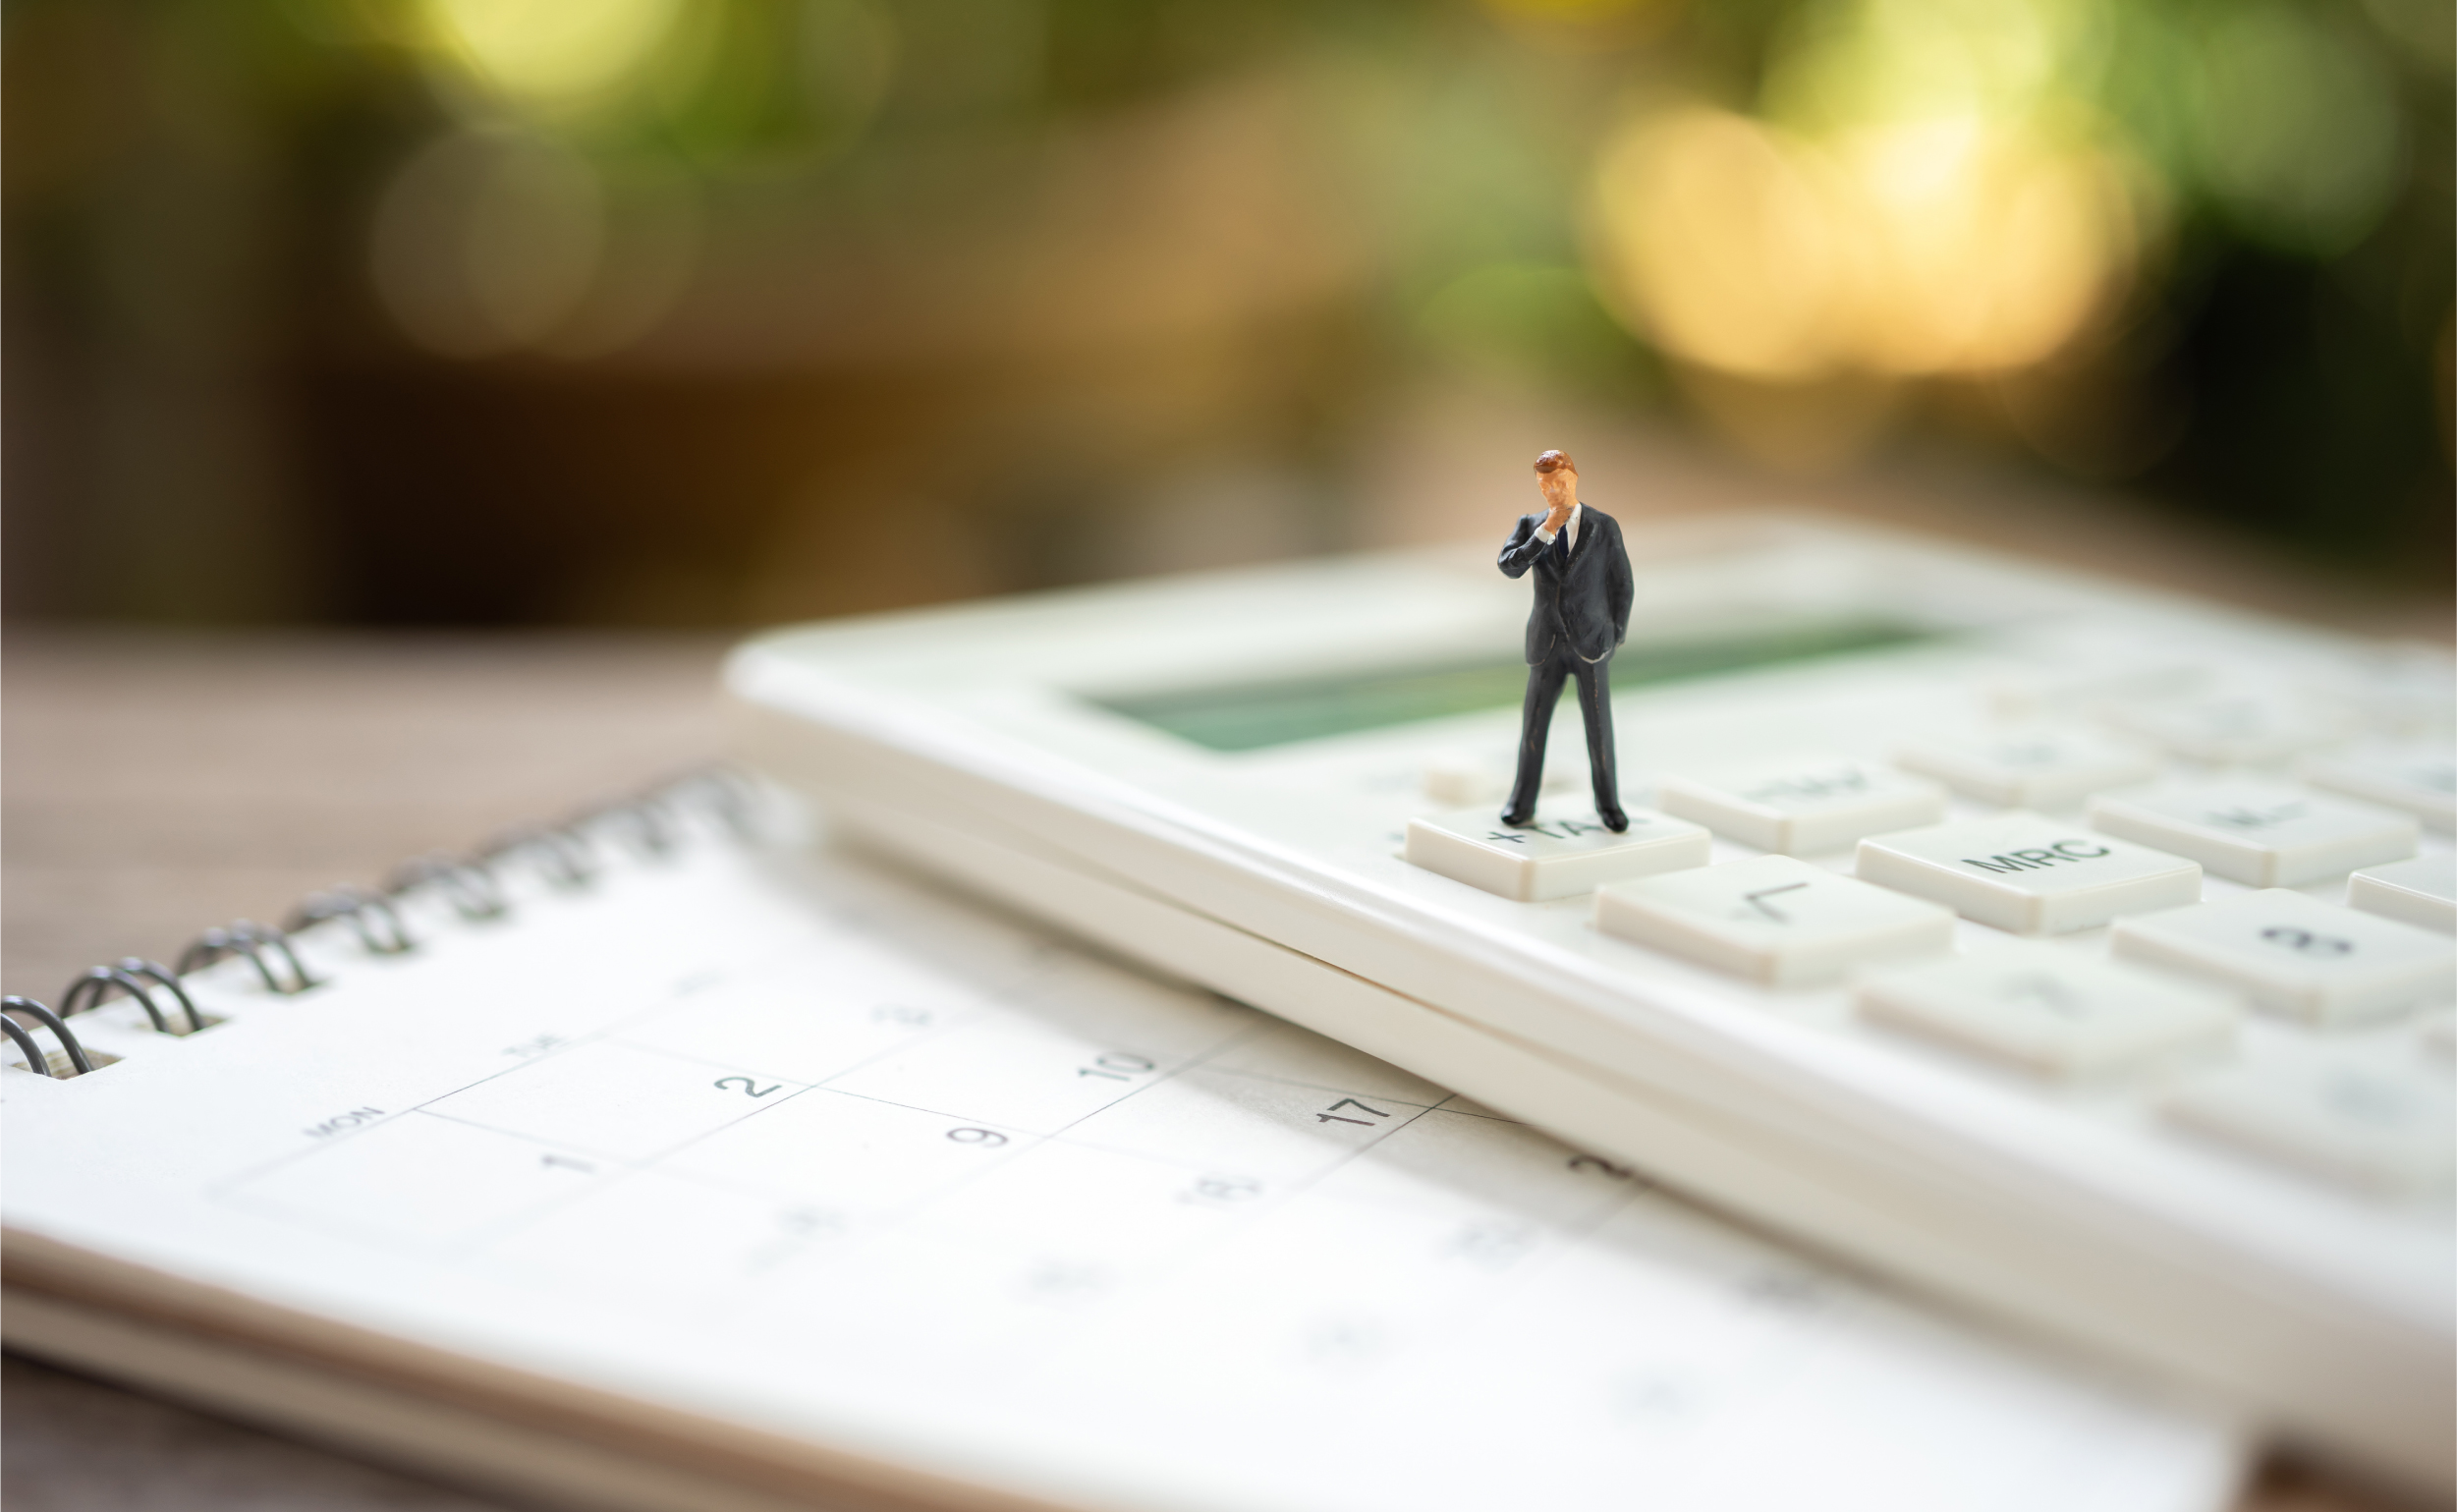 miniature-people-pay-queue-annual-income-tax-year-calculator-30